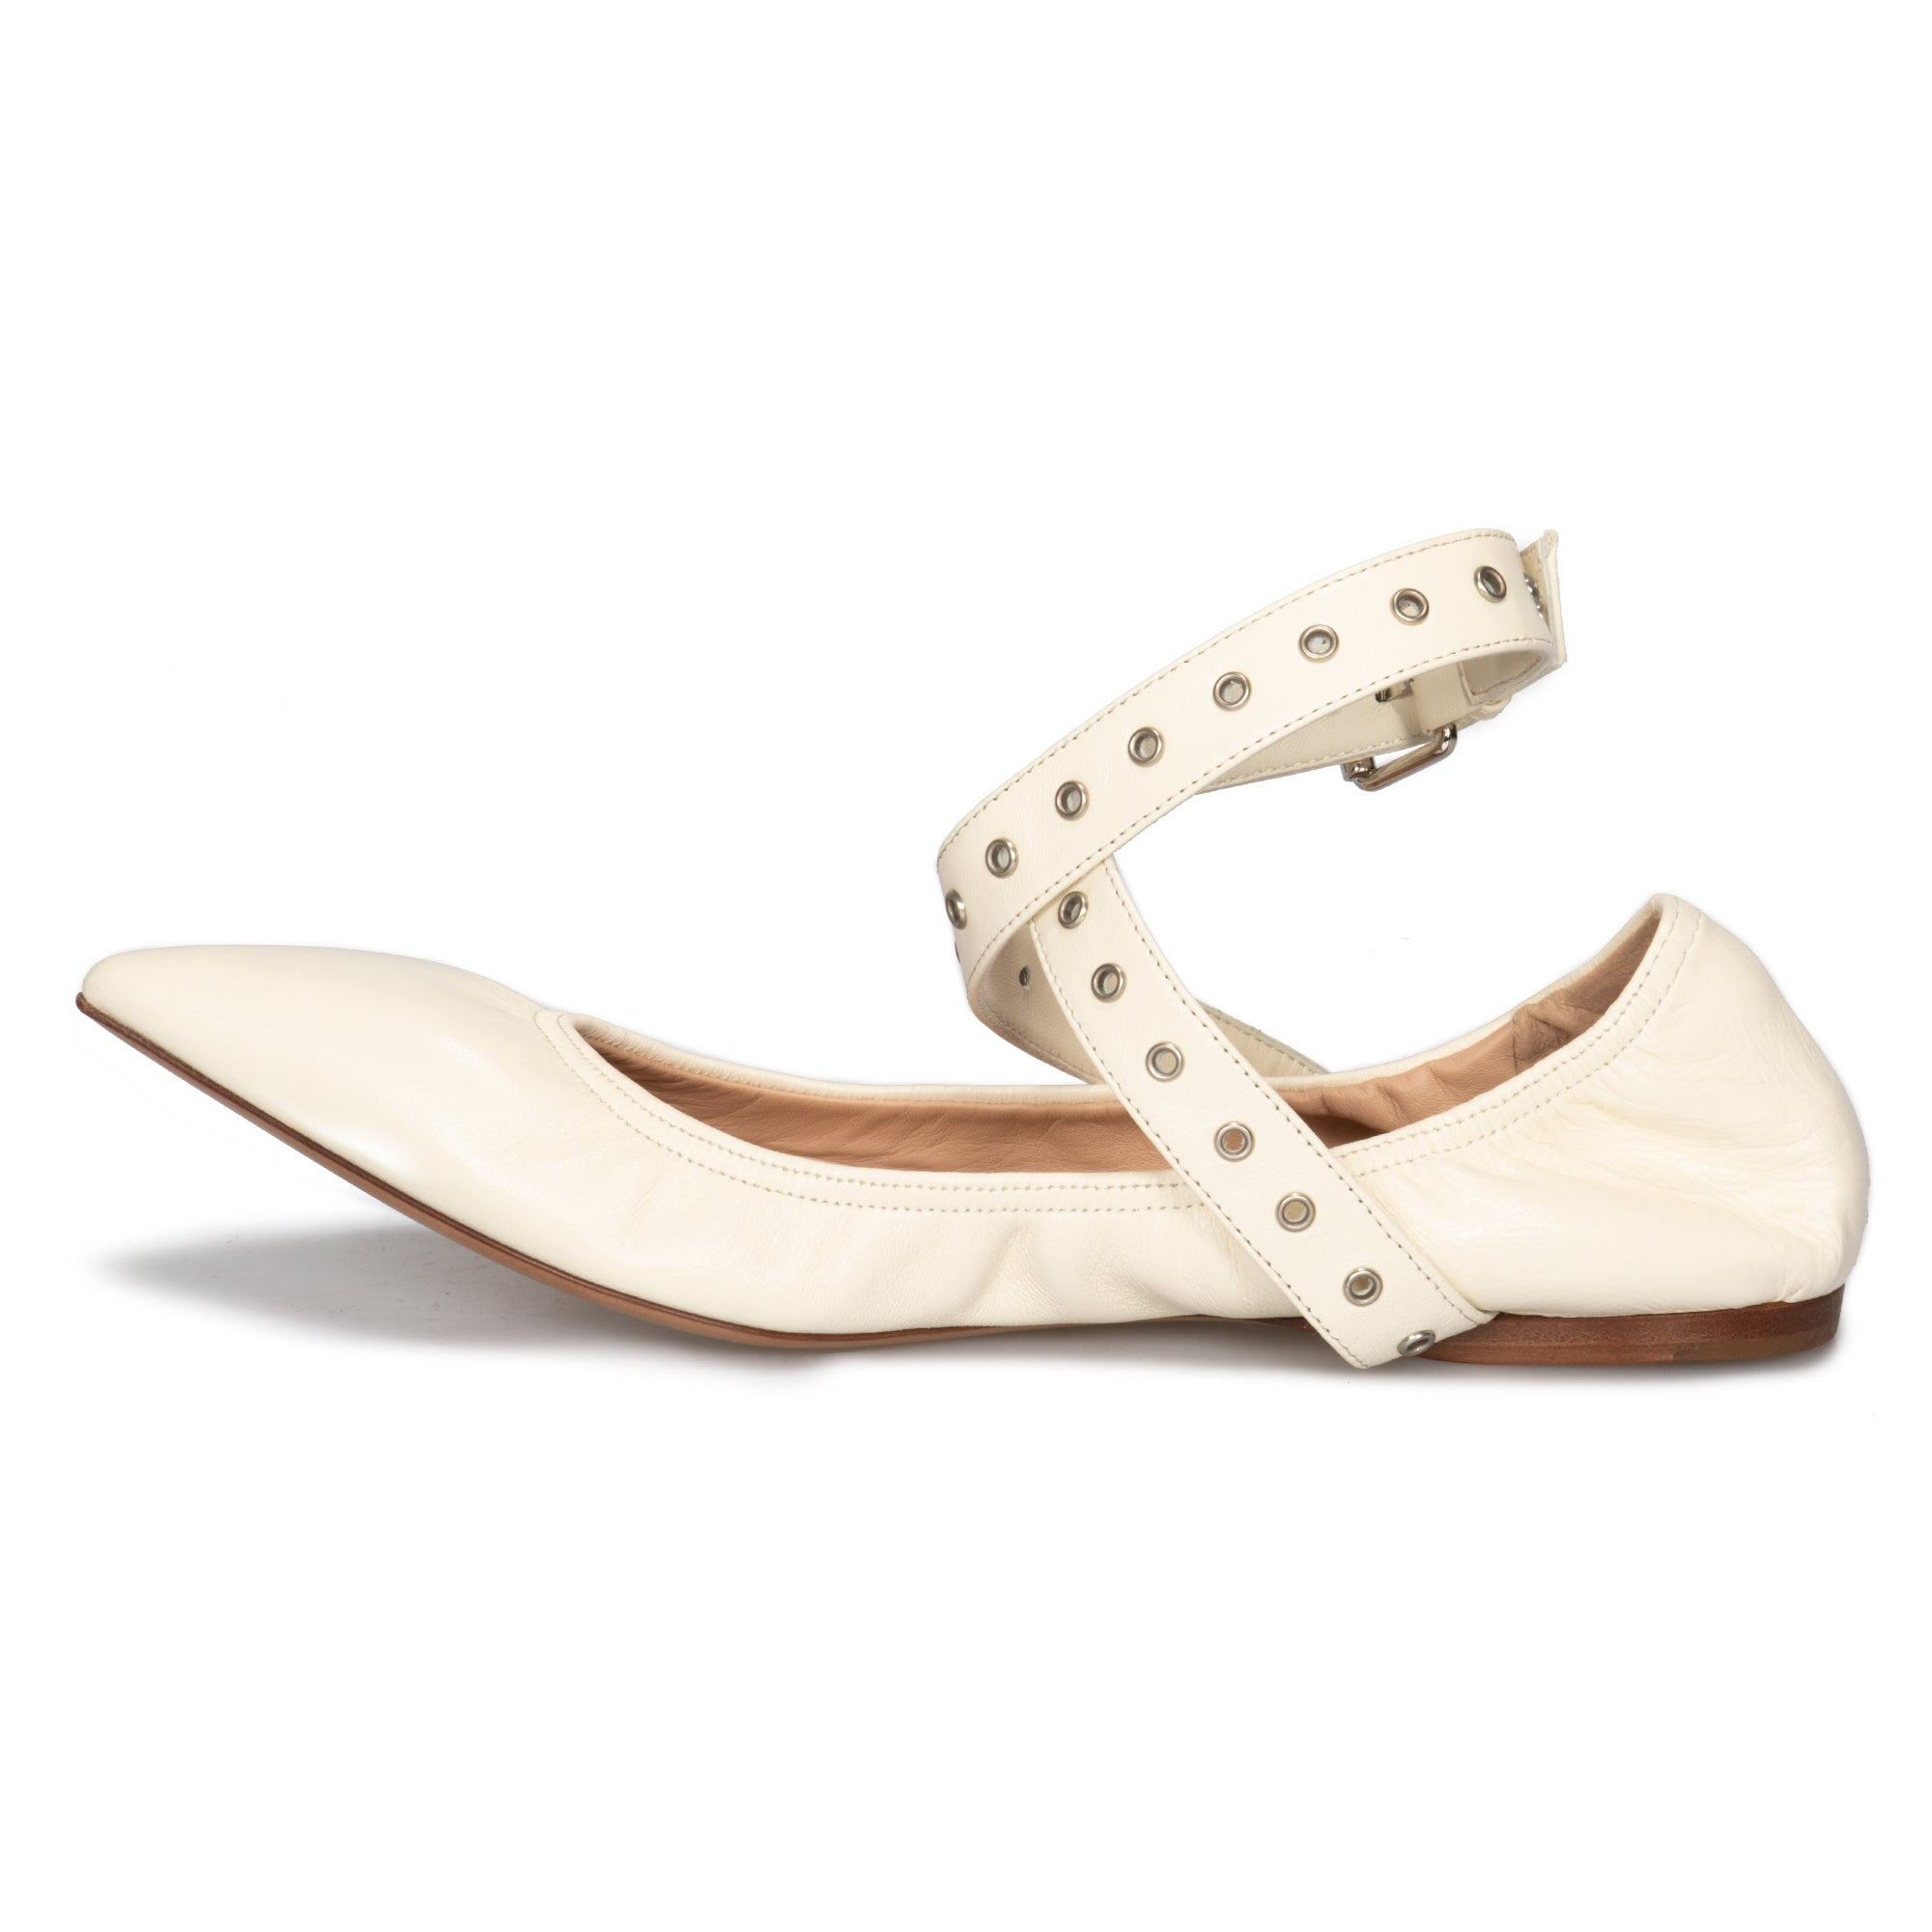 Valentino Love Latch Ballerina Flats in Off White